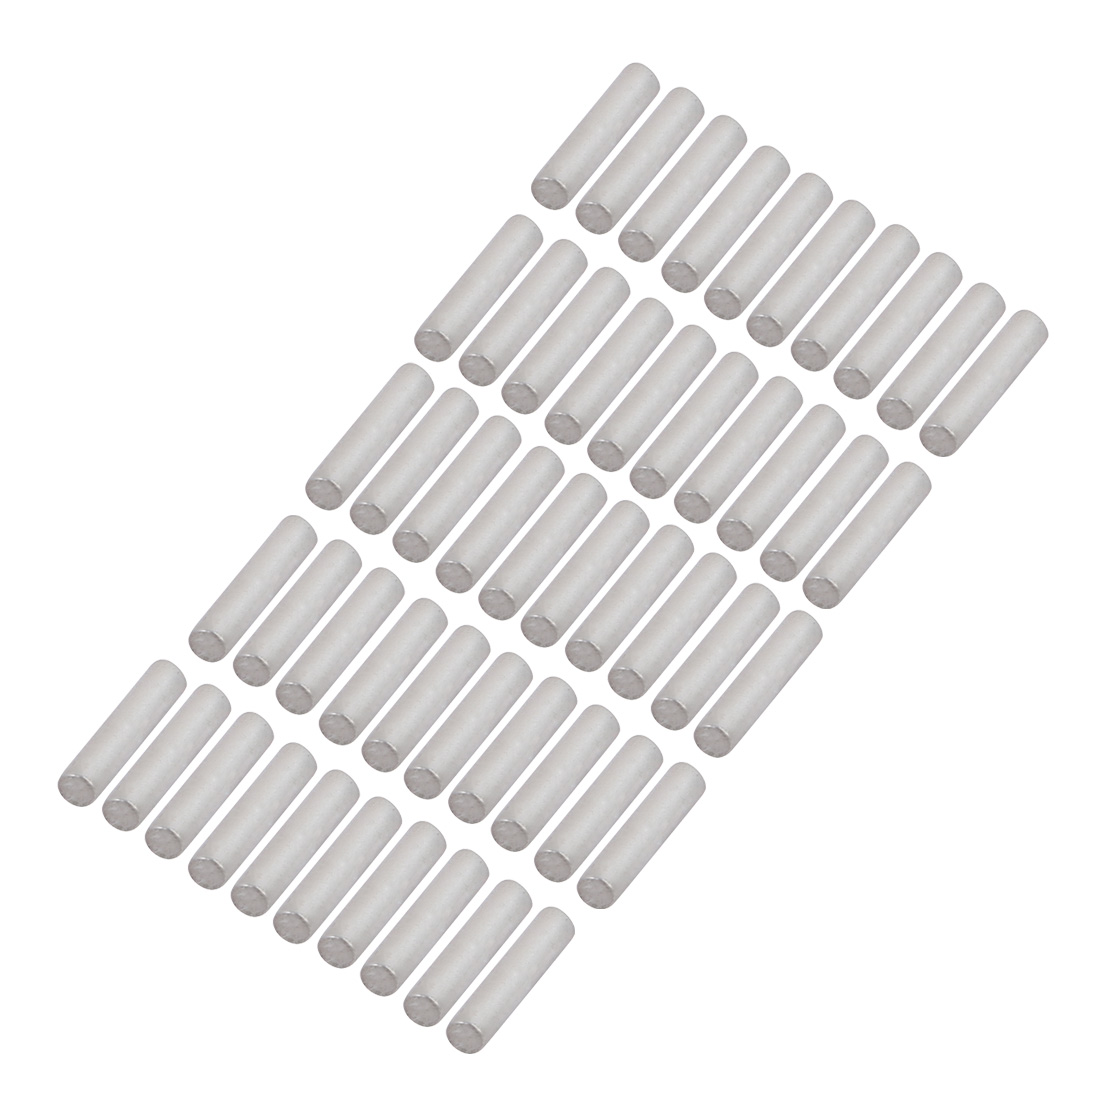 50Pcs Round Shaft Solid Durable Steel Rods Axles 2mm x 9mm Silver Tone